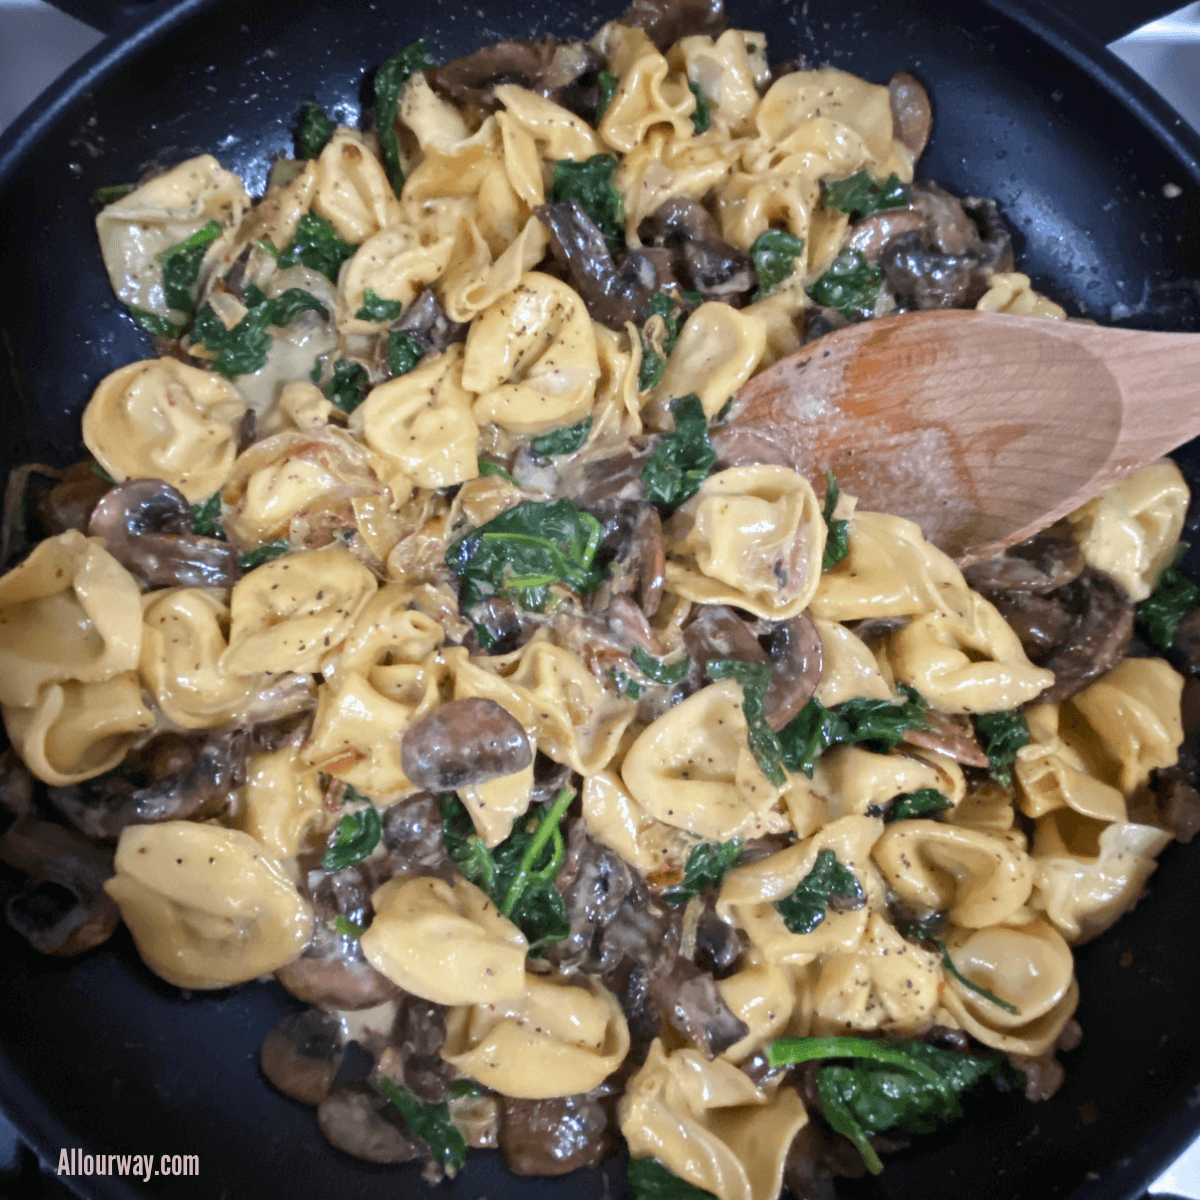 Skillet with wooden spoon stirring the saucy cheese tortellini with spinach, mushrooms and caramelized onions